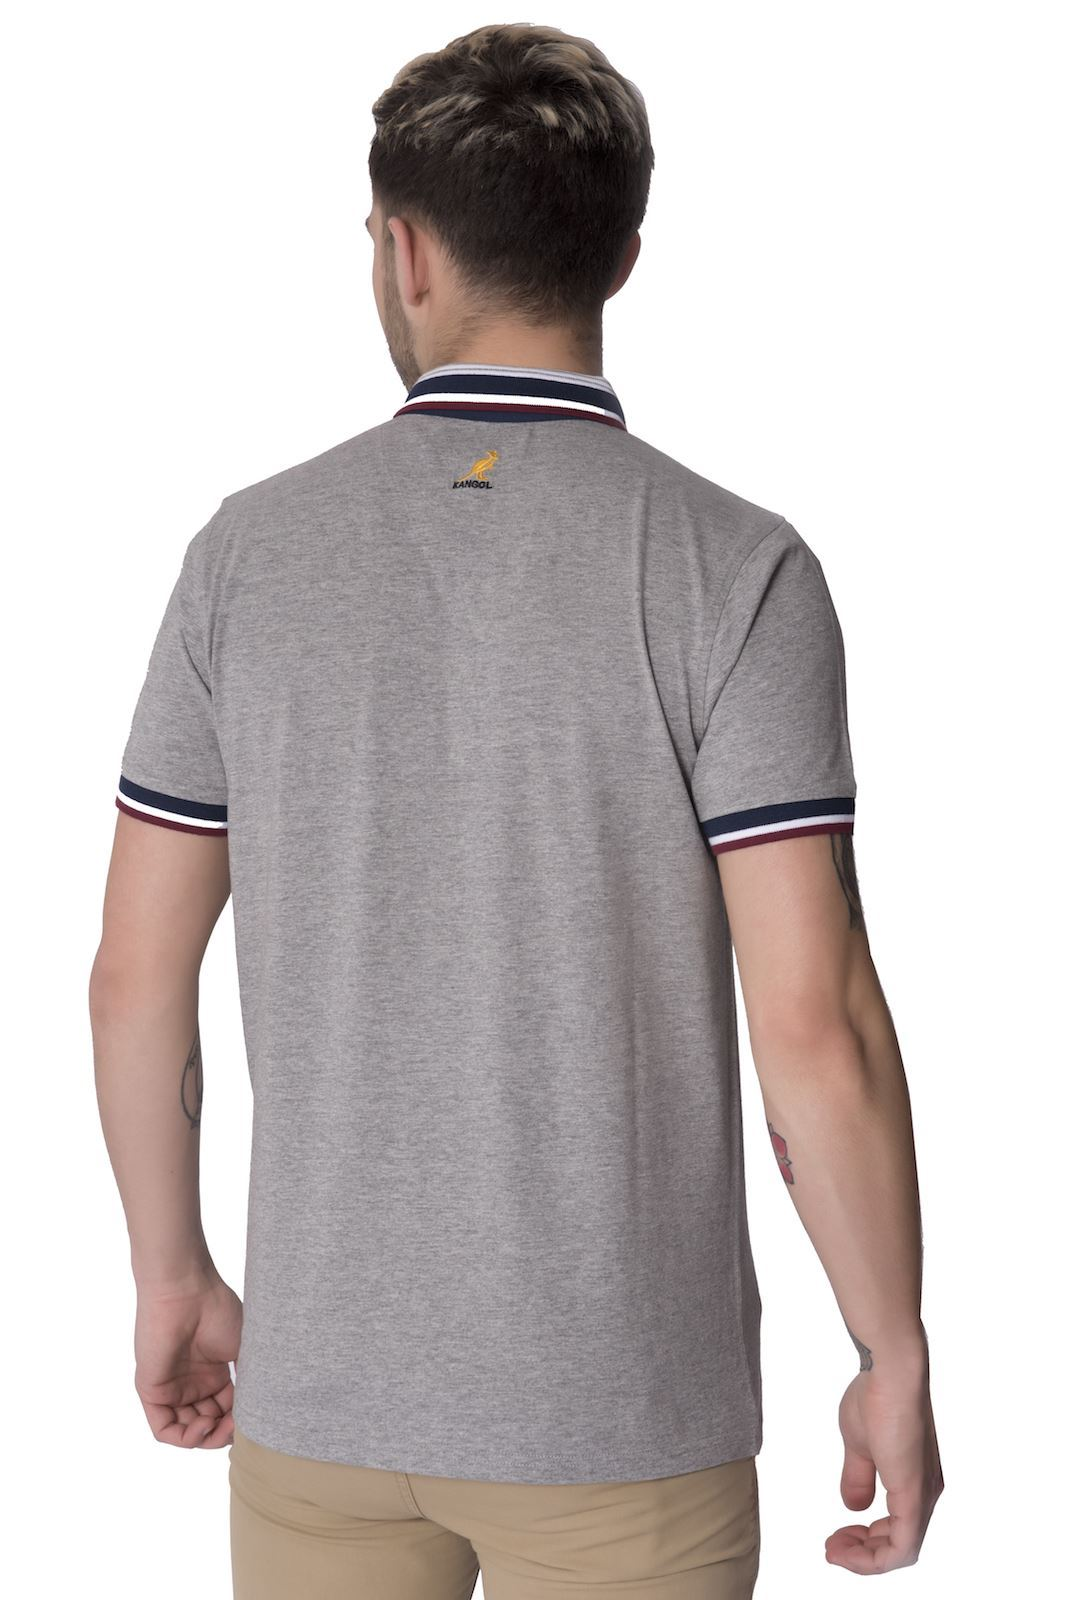 Kangol mens polo shirt ribbed striped collar short sleeve for Mens button collar shirts